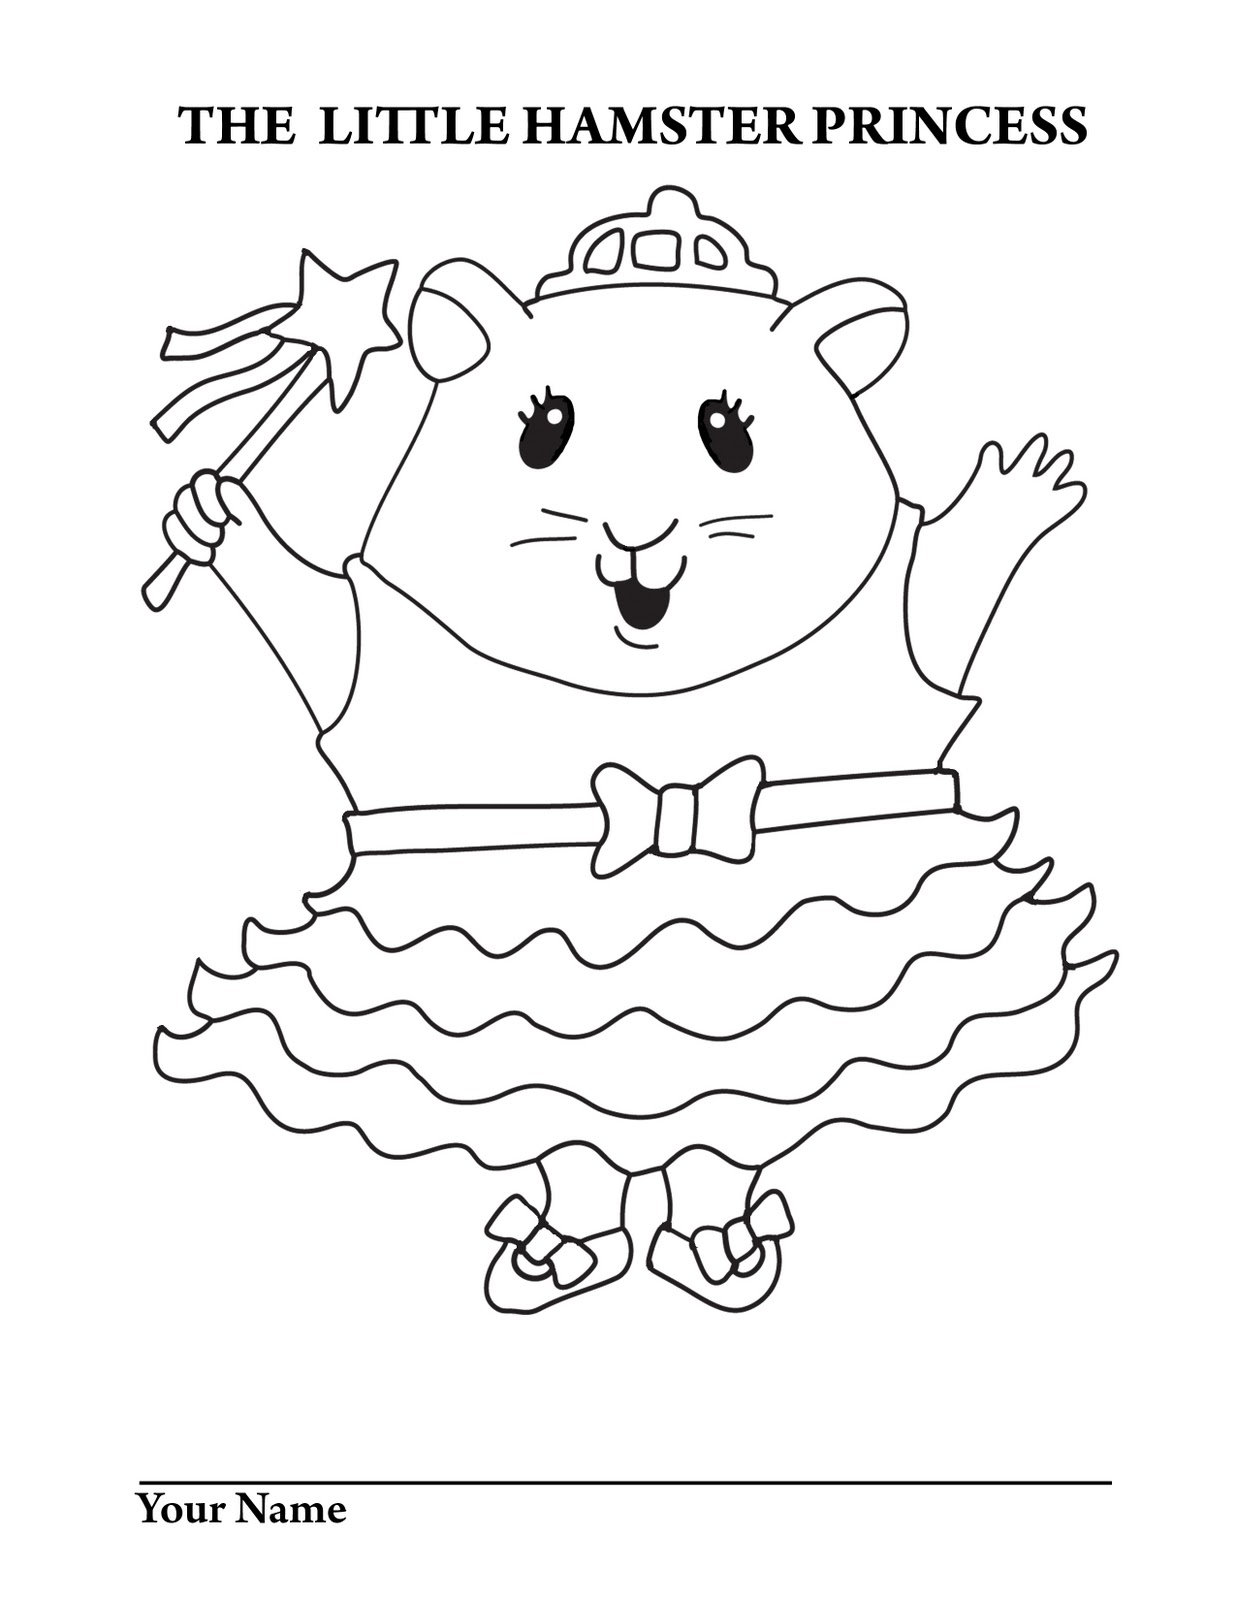 Little Hamster Princess Little Hamster Princess Coloring Page